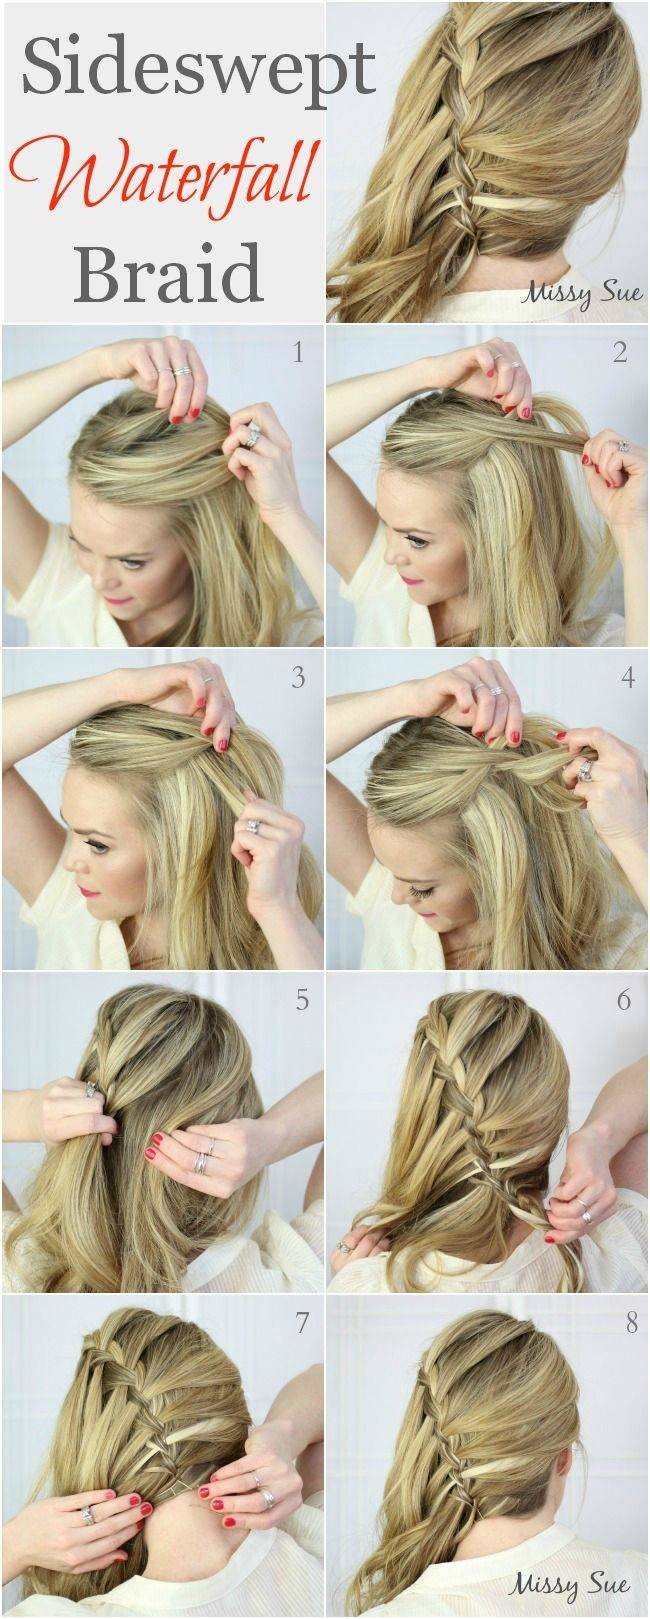 Side Swept Waterfall Braid Hairstyles Tutorial